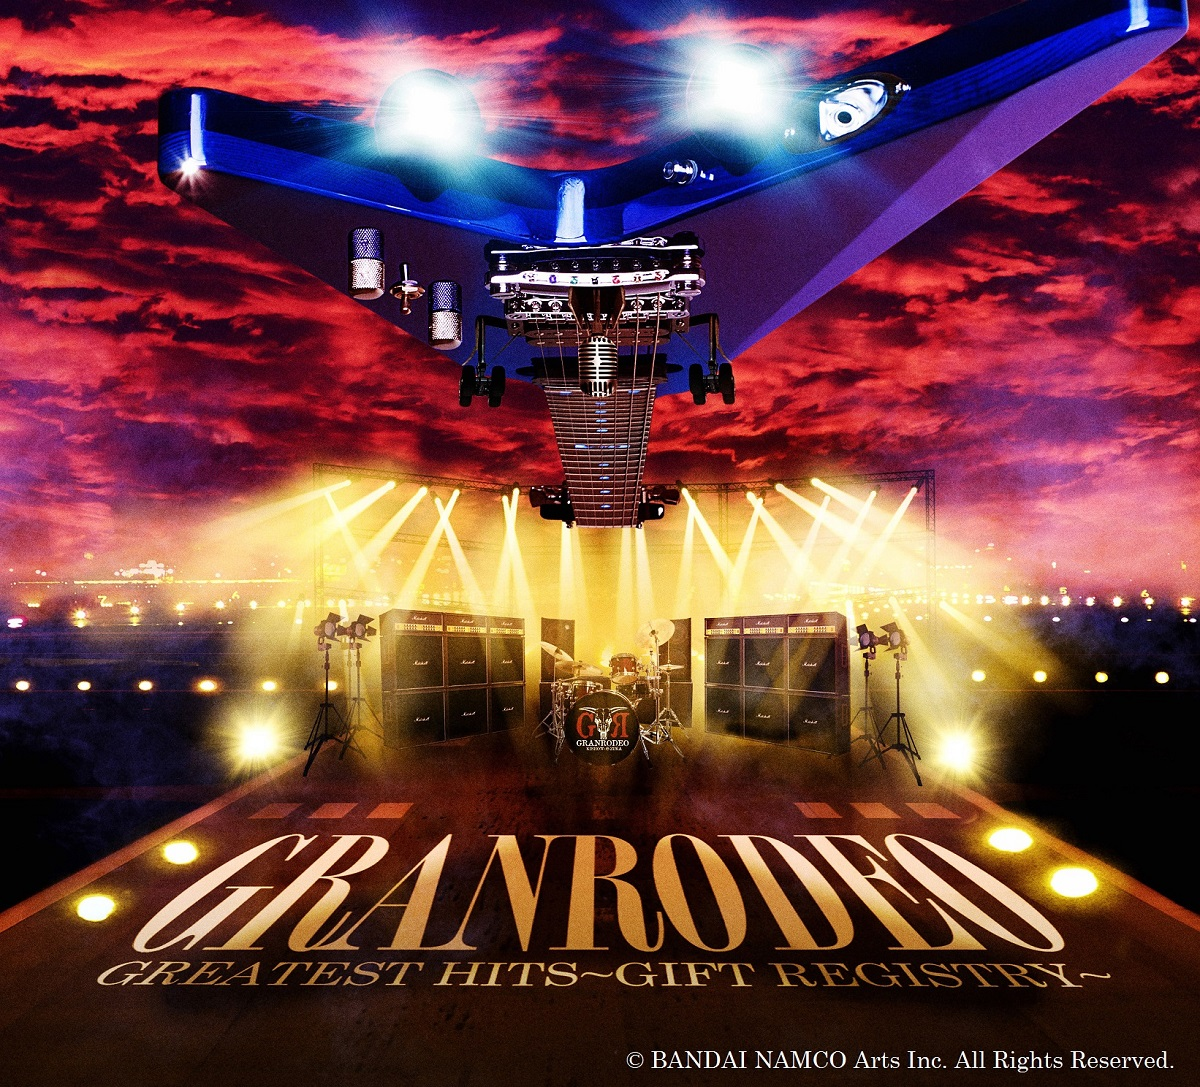 GRANRODEO GREATEST HITS GRANRODEO CD (Import)